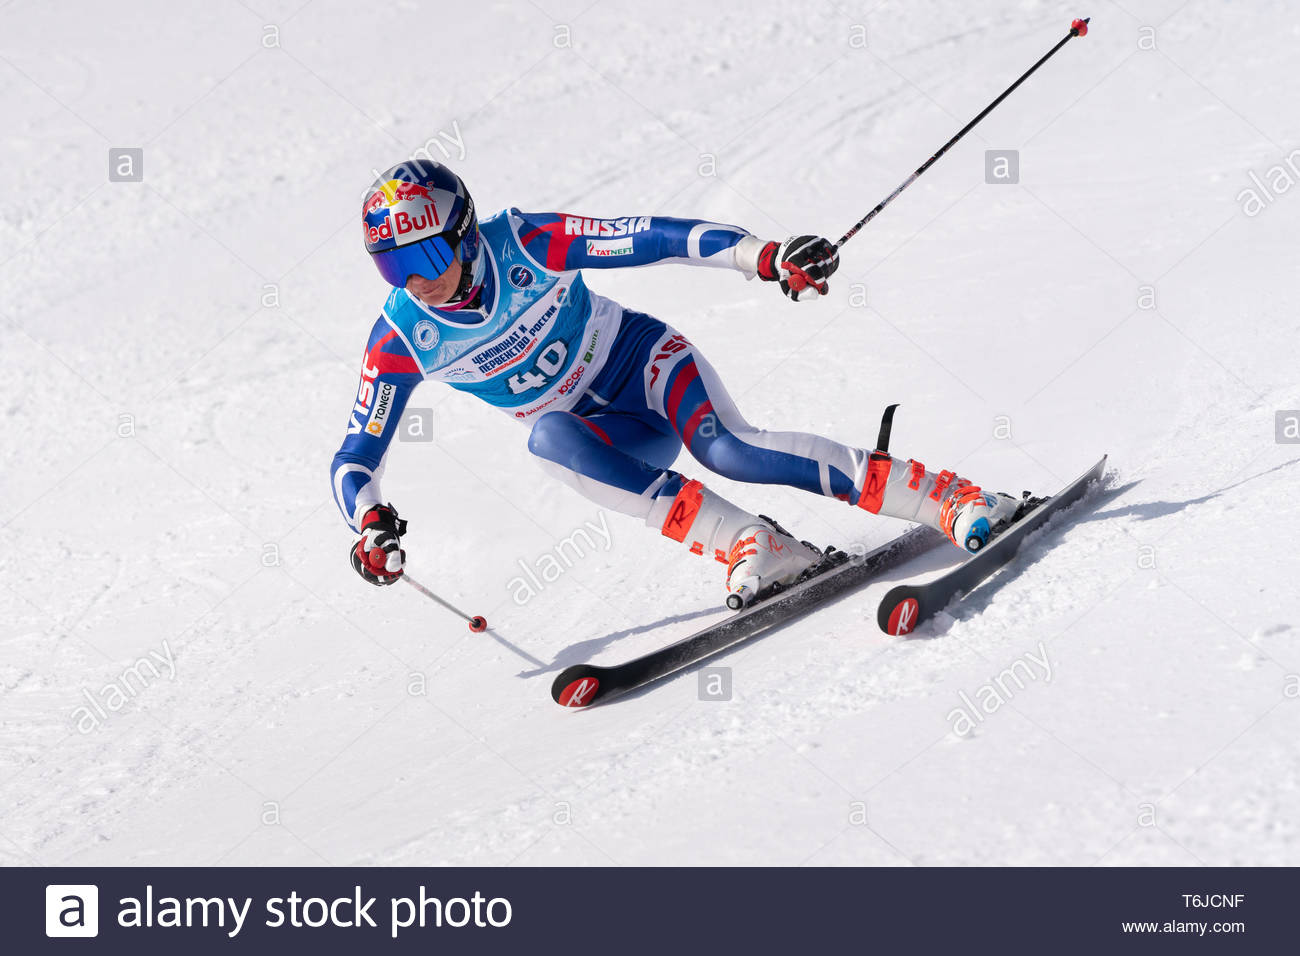 KAMCHATKA PENINSULA, RUSSIA - APR 1, 2019: Mountain skier Mogilyuk Alexandr (Kamchatka) skiing down mount slope. Russian Alpine Skiing Cup, Internatio - Stock Image